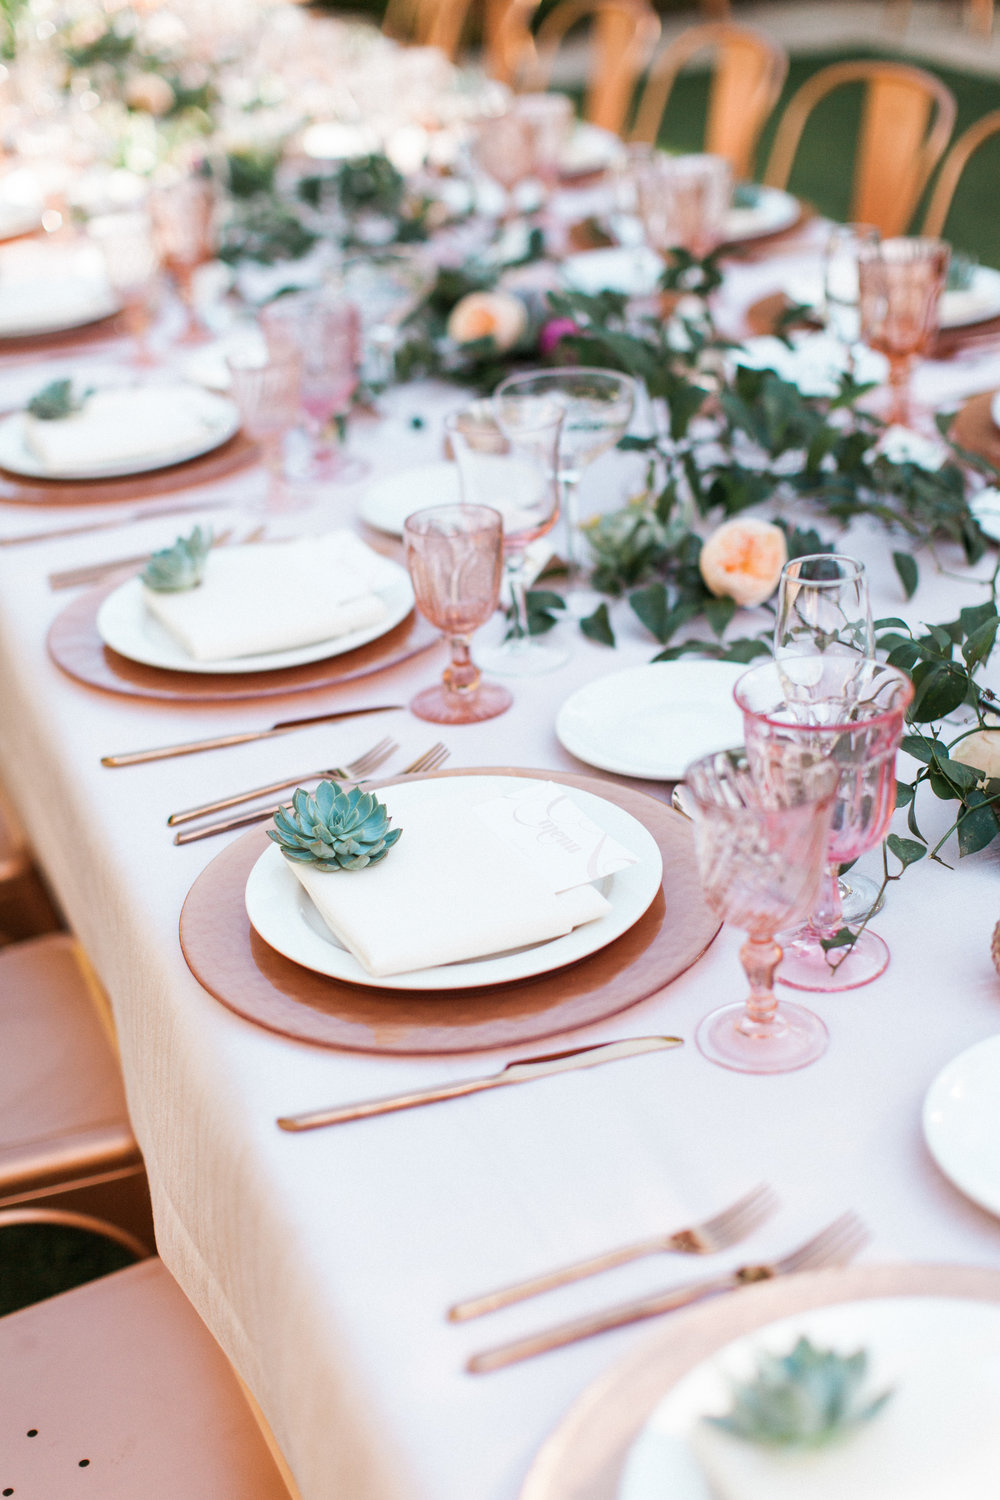 wedding decor, wedding planner, phoenix wedding, scottsdale wedding, arizona wedding, arizona wedding planner, destination wedding, wedding reception, copper wedding, rose gold wedding, succulent wedding, succulent wedding